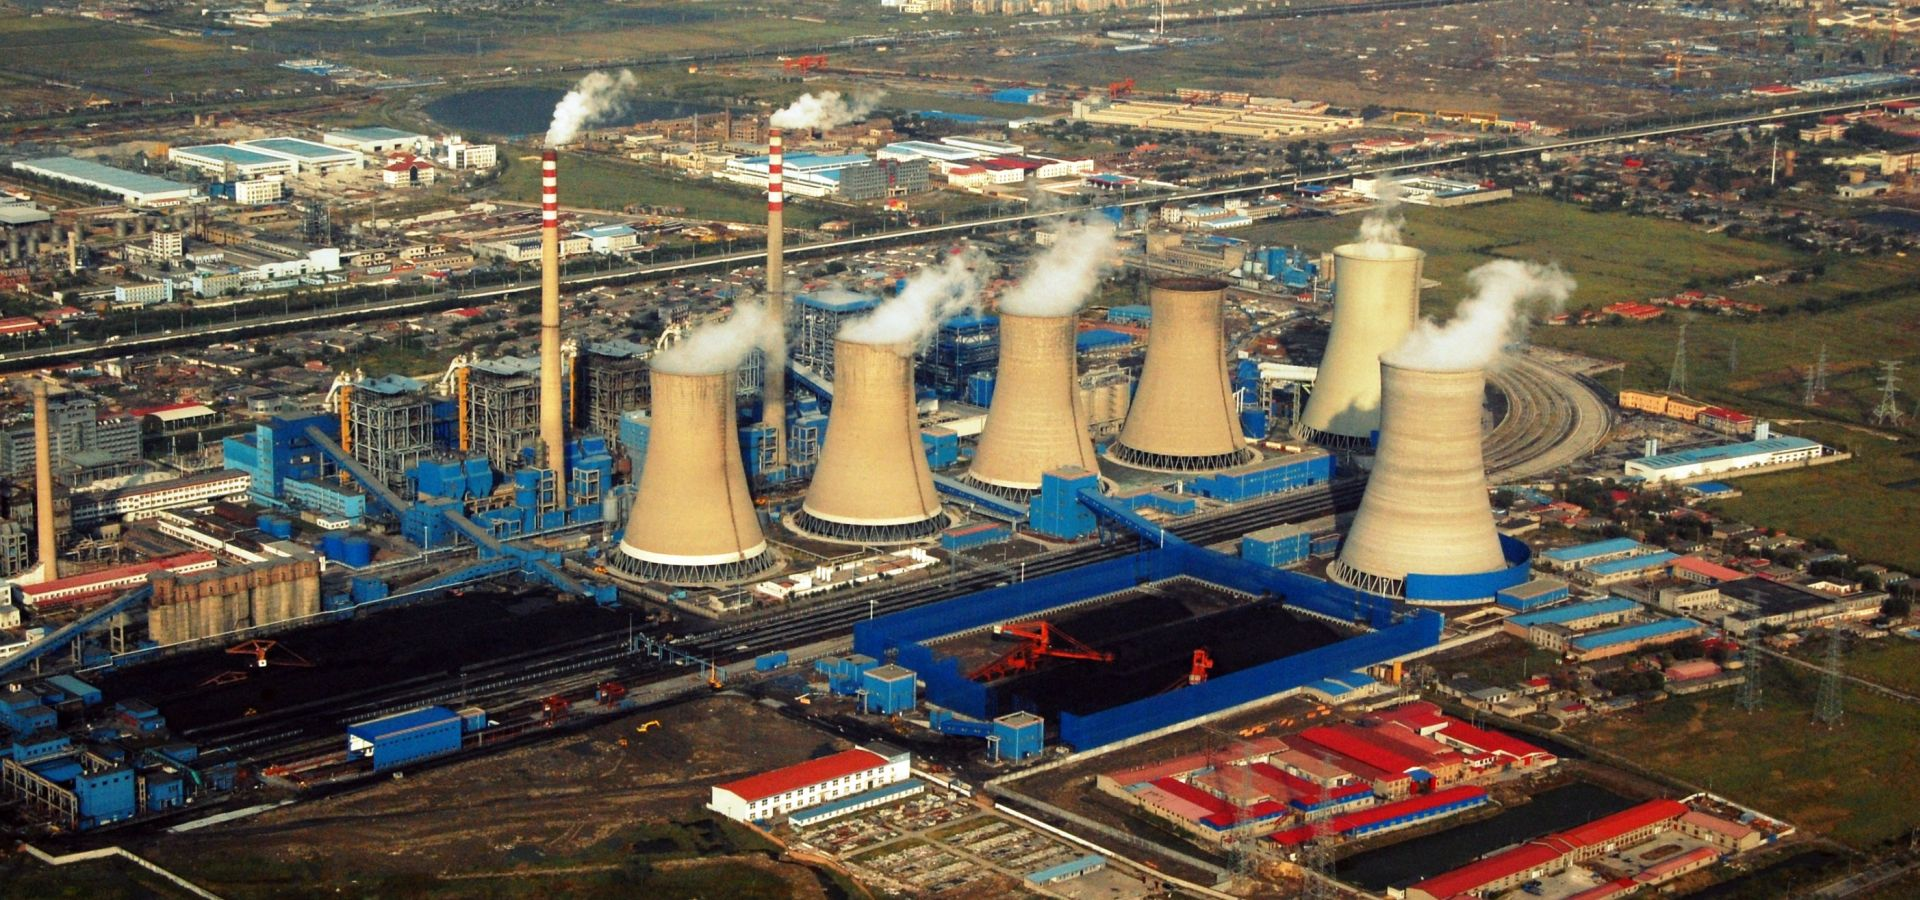 A coal power plant in China